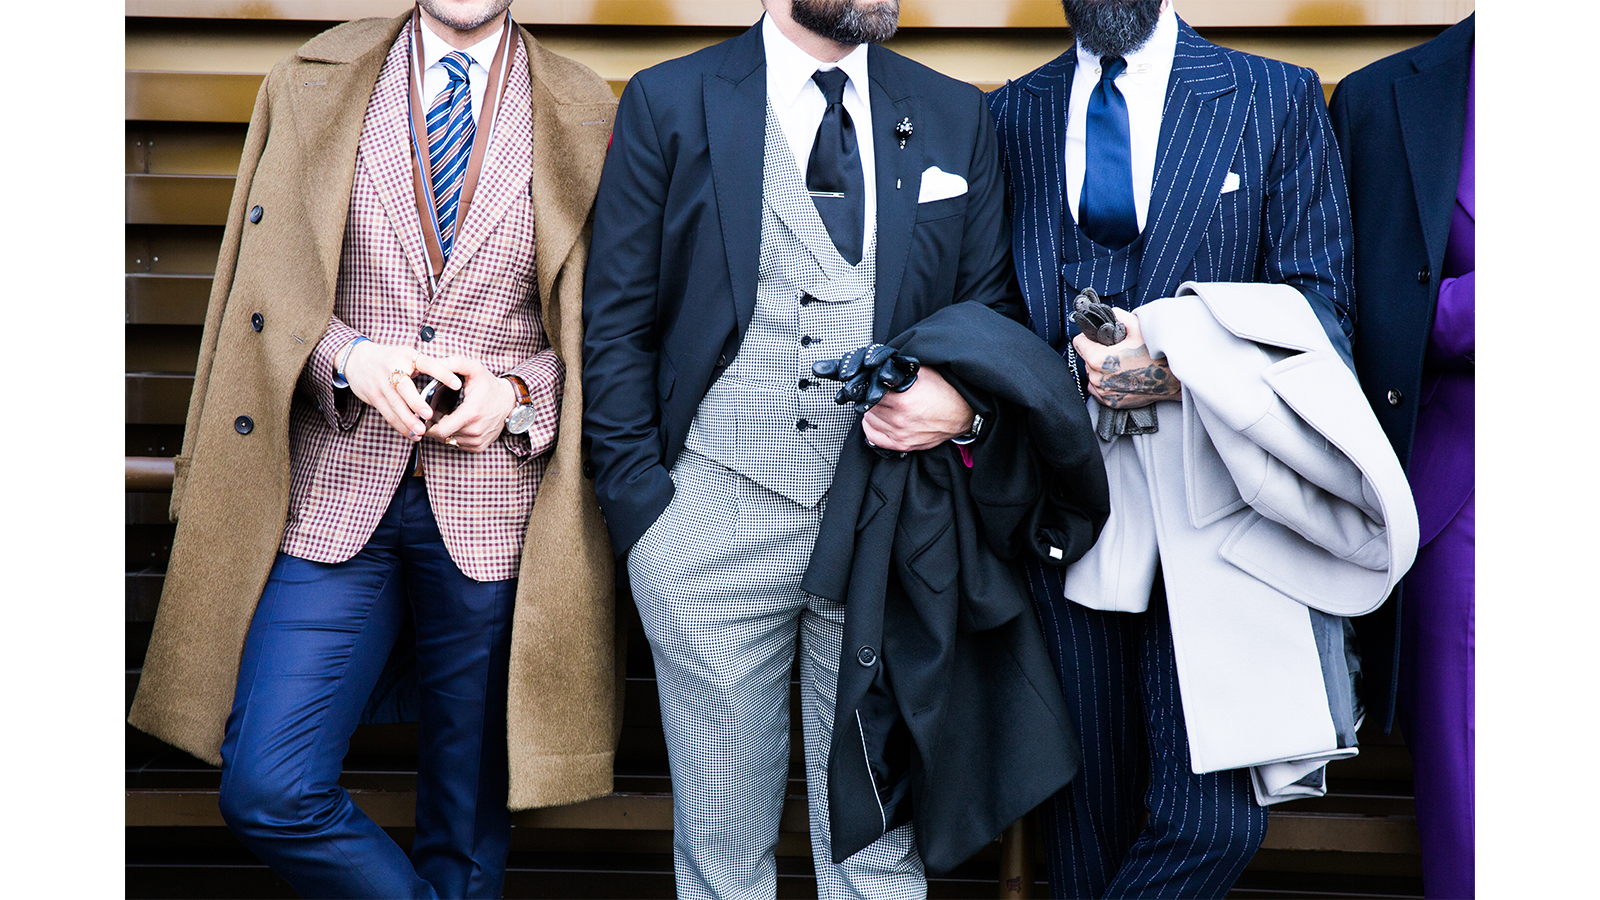 7 style tips for shorter men - use colour to your advantage